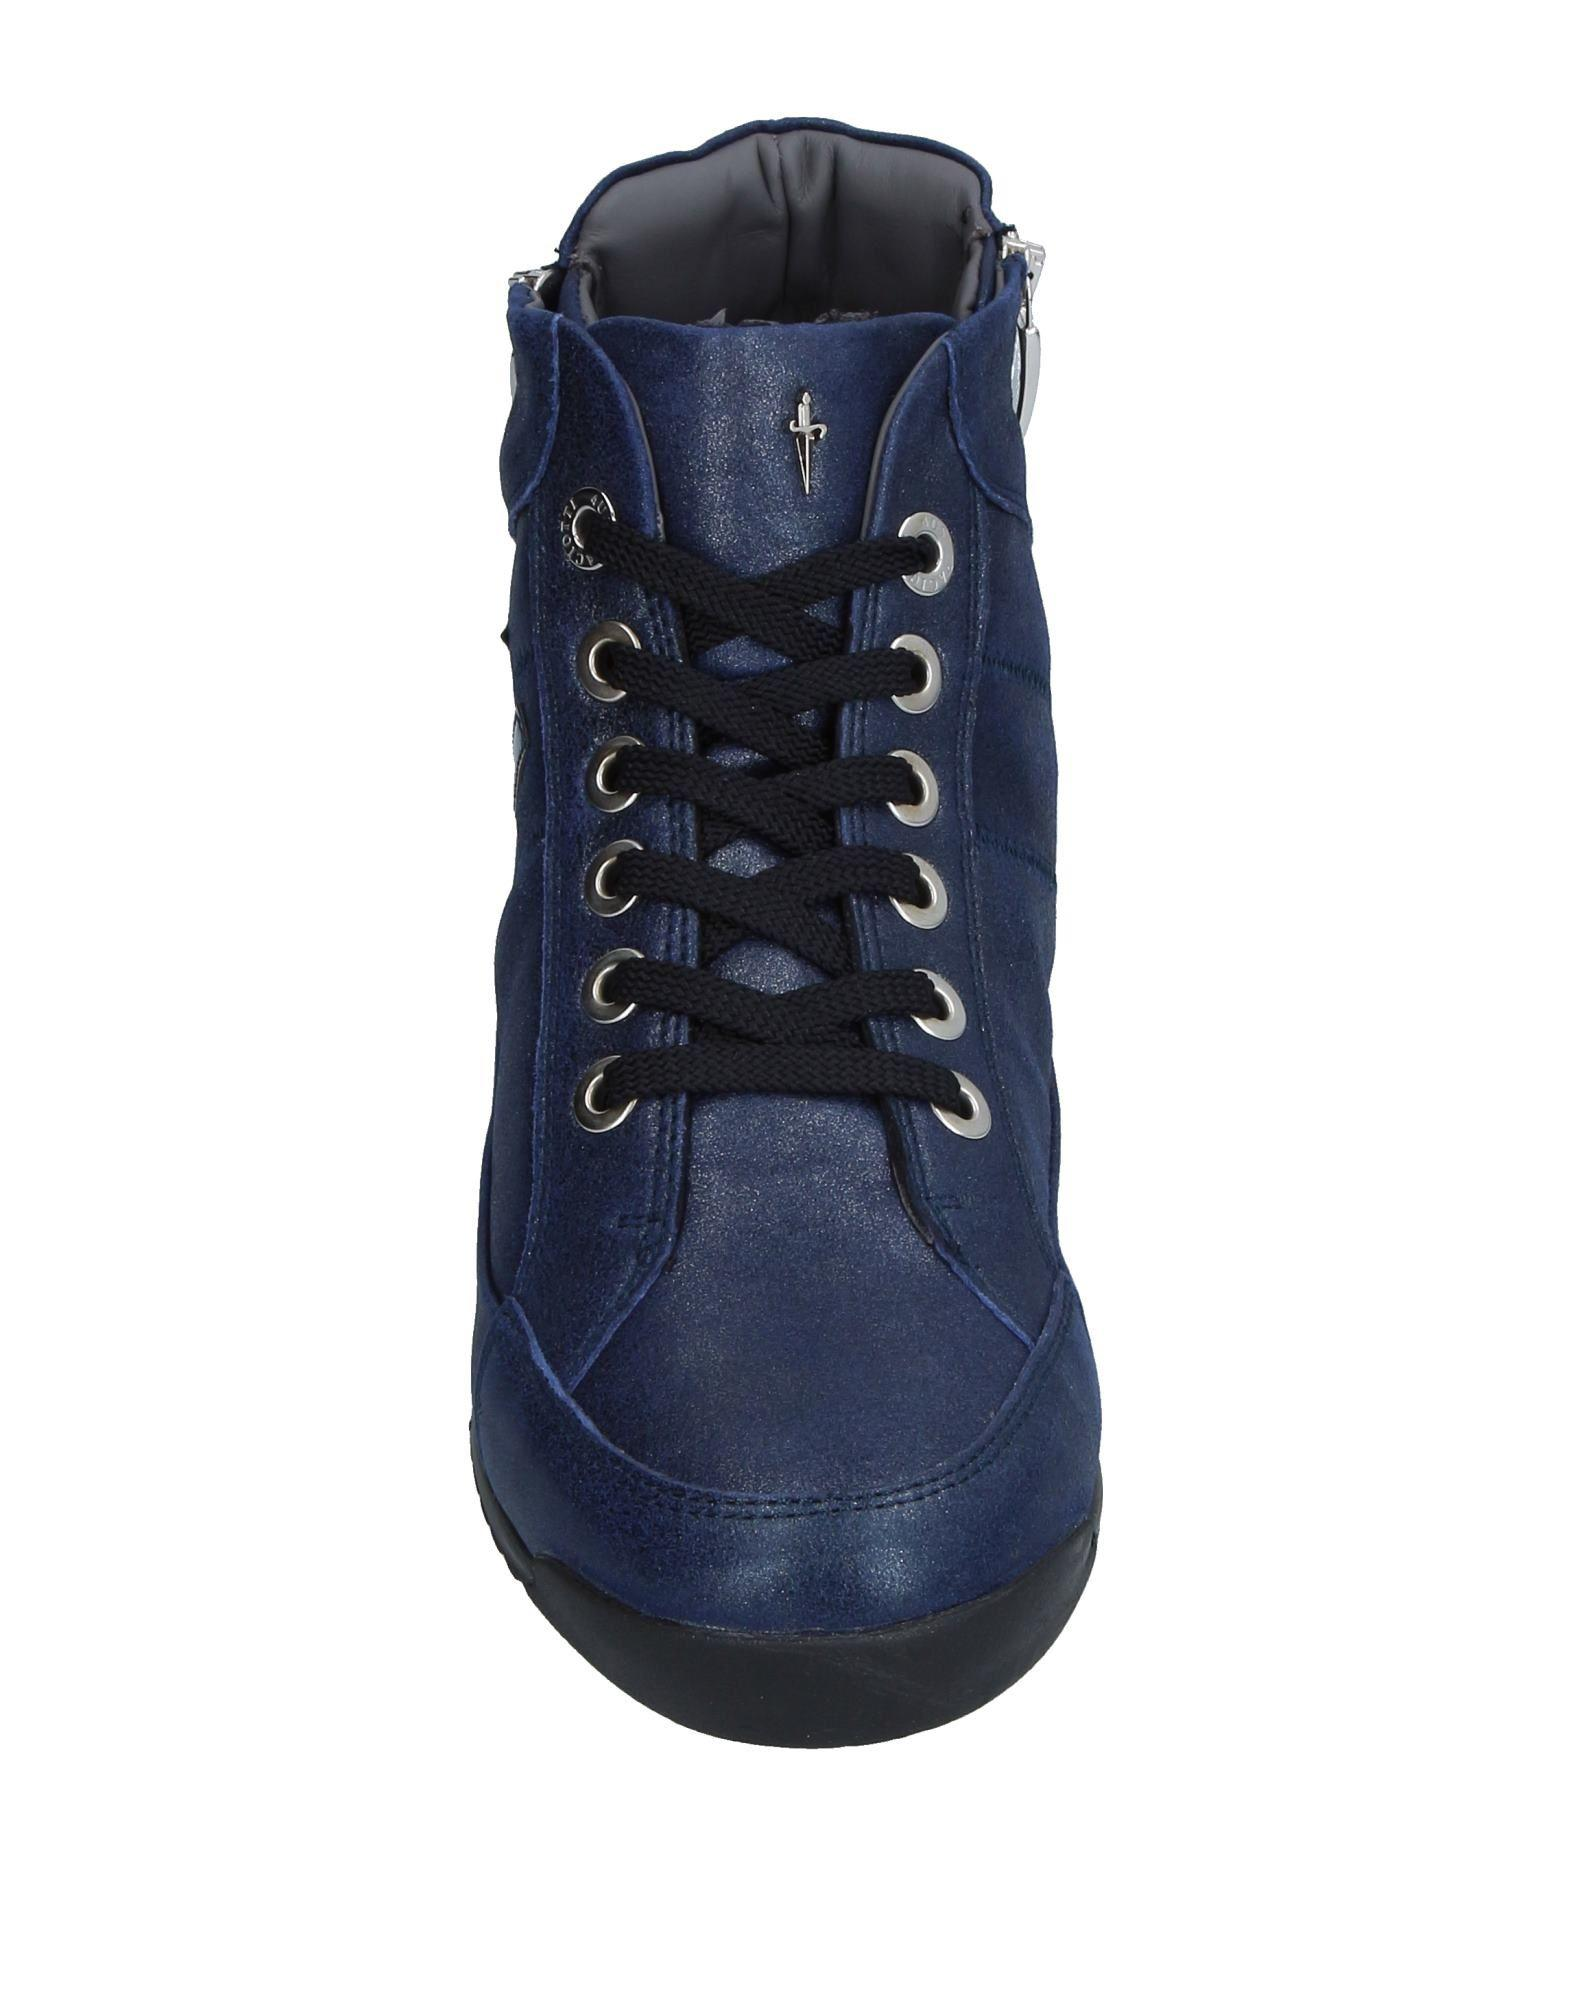 Cesare Paciotti Leather High-tops & Sneakers in Blue